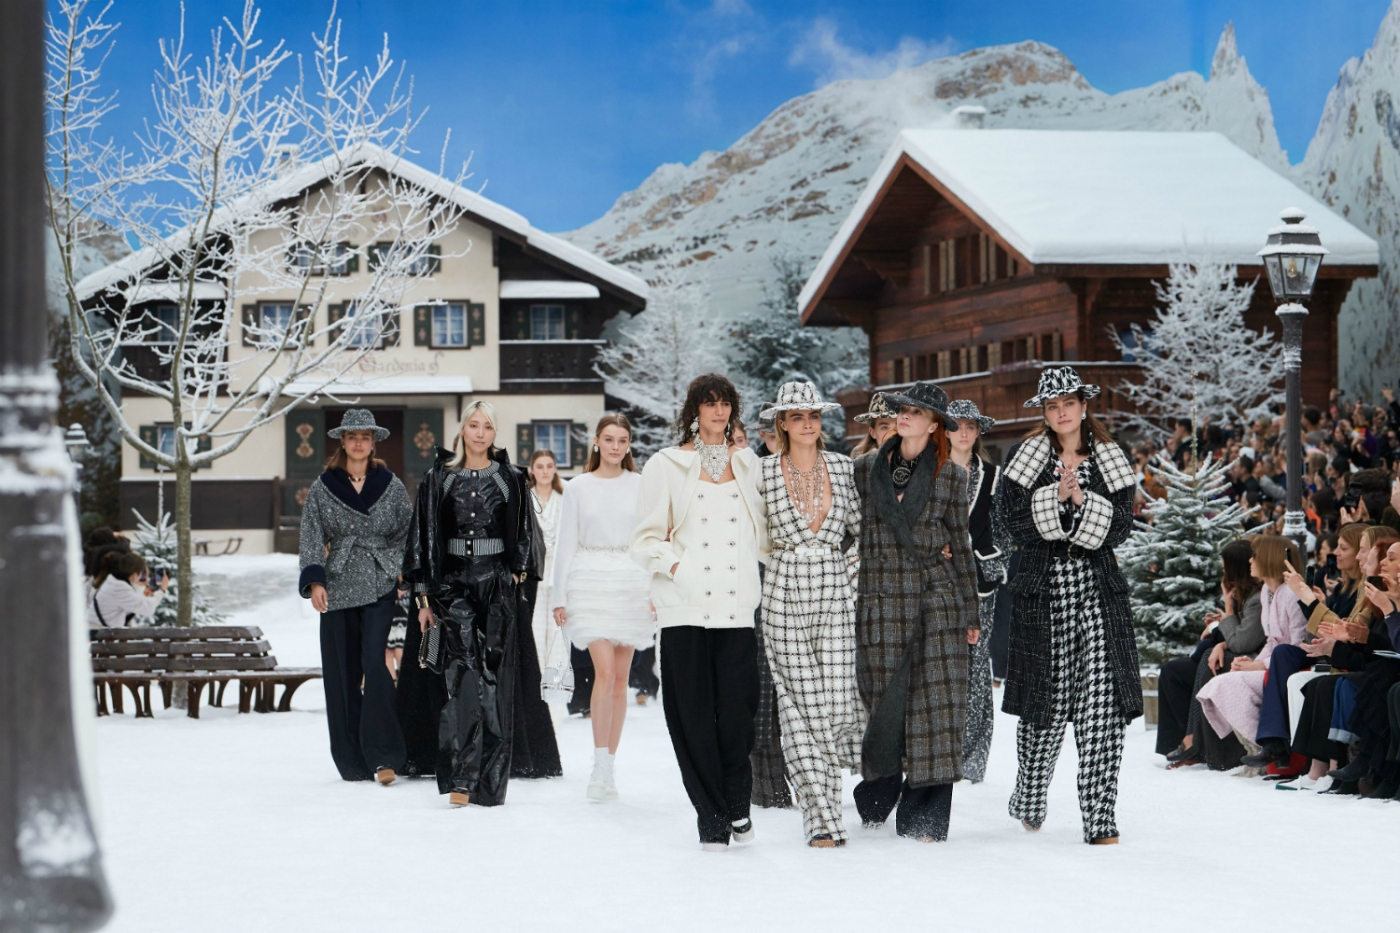 karl lagerfeld Karl Lagerfeld's Final Chanel Show Becomes A Flawless Winter Tale Lagerfelds Final Chanel Show is A Flawless Winter Tale feature 1400x933